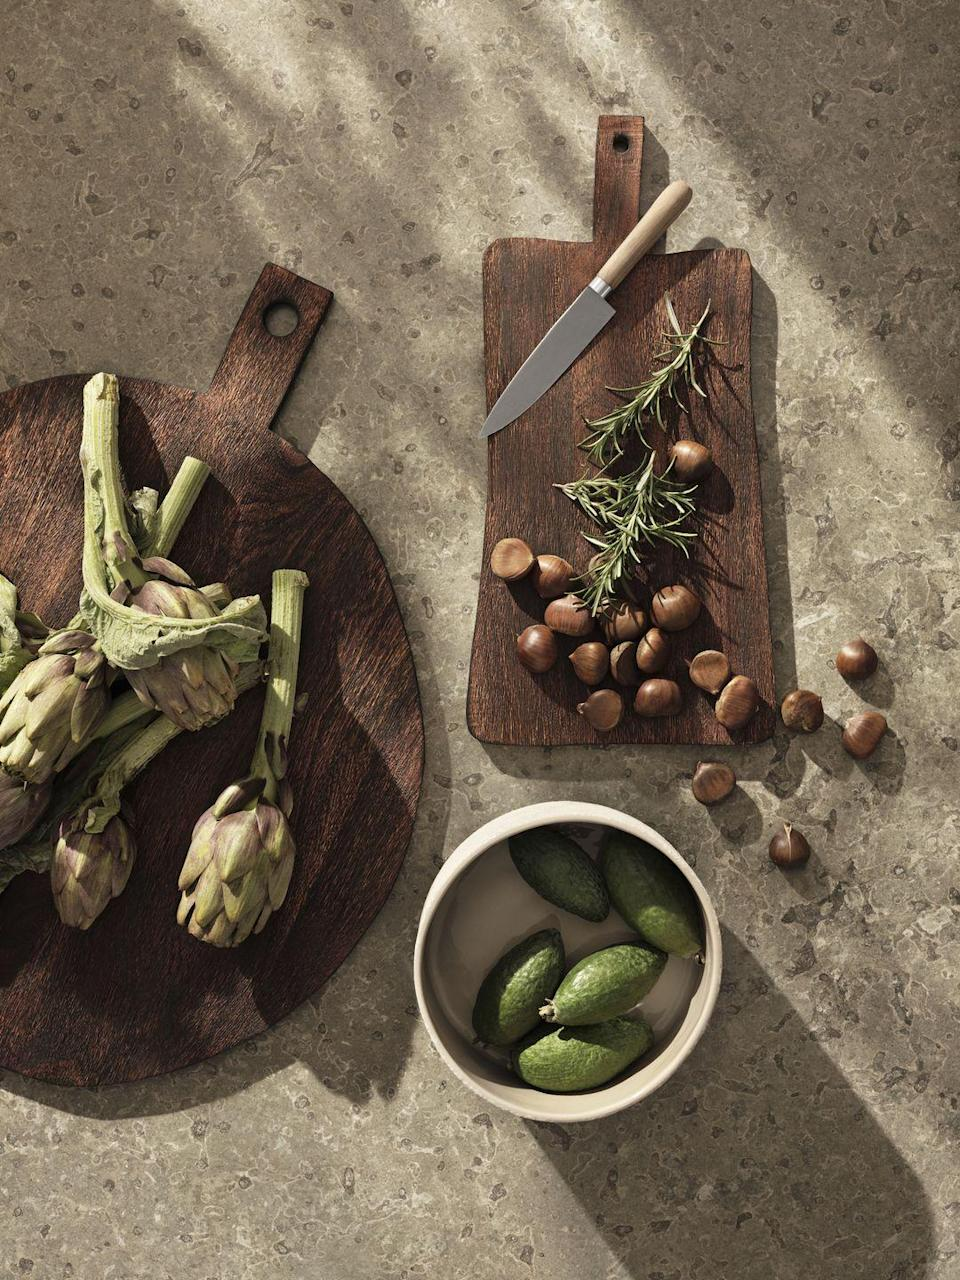 """<p>Get set for summer with H&M Home's beautiful wooden serving boards — perfect to show off at a dinner party.</p><p>'Our cutting boards are made with FSC certified Acacia wood,' explain H&M Home. 'This type of wood is well-known for its hardness and the grain can vary between straight and wavy patterns, while the shade of colour can range from light amber to a dark mahogany.'</p><p><a class=""""link rapid-noclick-resp"""" href=""""https://go.redirectingat.com?id=127X1599956&url=https%3A%2F%2Fwww2.hm.com%2Fen_gb%2Fhome.html&sref=https%3A%2F%2Fwww.housebeautiful.com%2Fuk%2Flifestyle%2Fshopping%2Fg36671419%2Fhandm-home-love-of-craft-collection-artisans%2F"""" rel=""""nofollow noopener"""" target=""""_blank"""" data-ylk=""""slk:COMING SOON"""">COMING SOON</a></p>"""